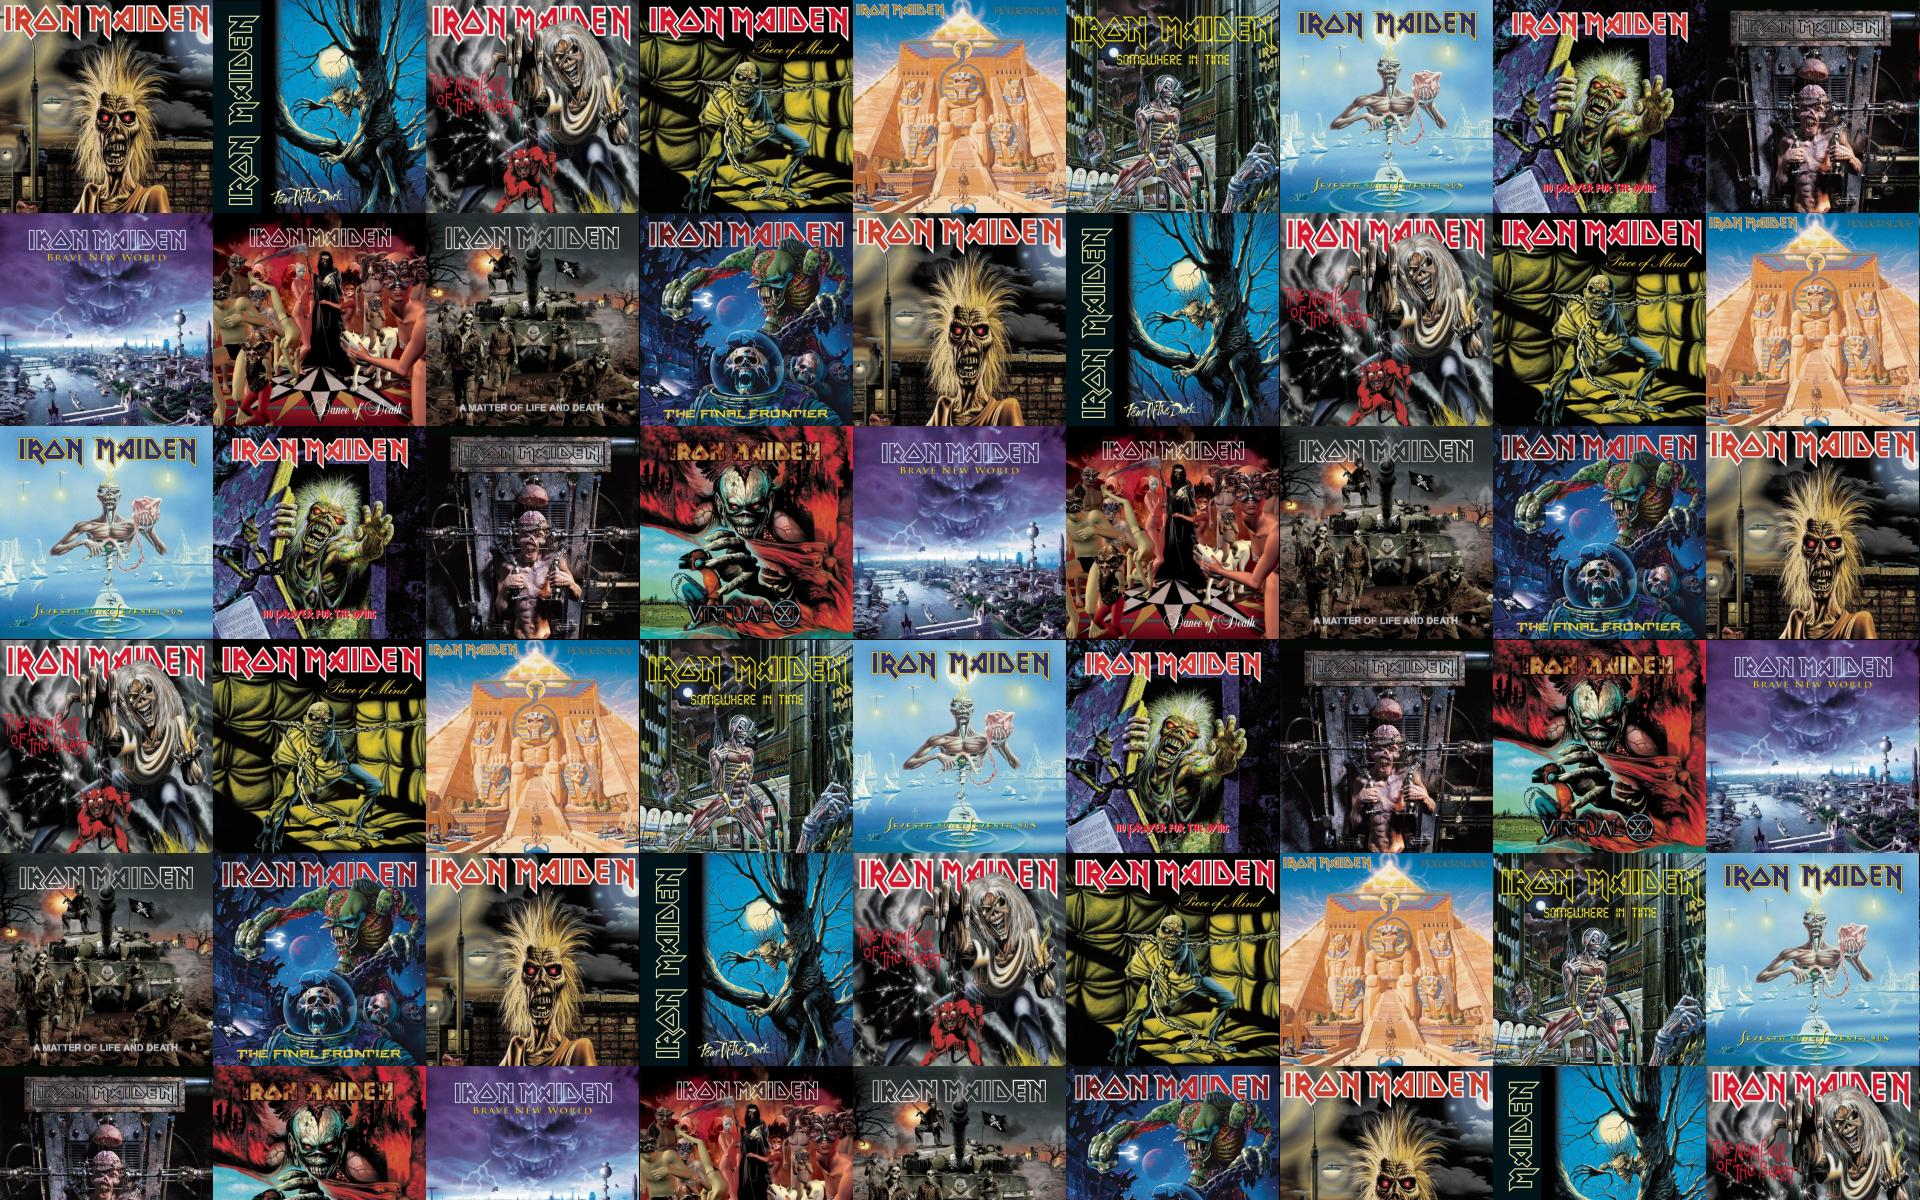 Download This Free Wallpaper With Images Of Iron Maiden Killers Fear The Dark Number Beast Piece